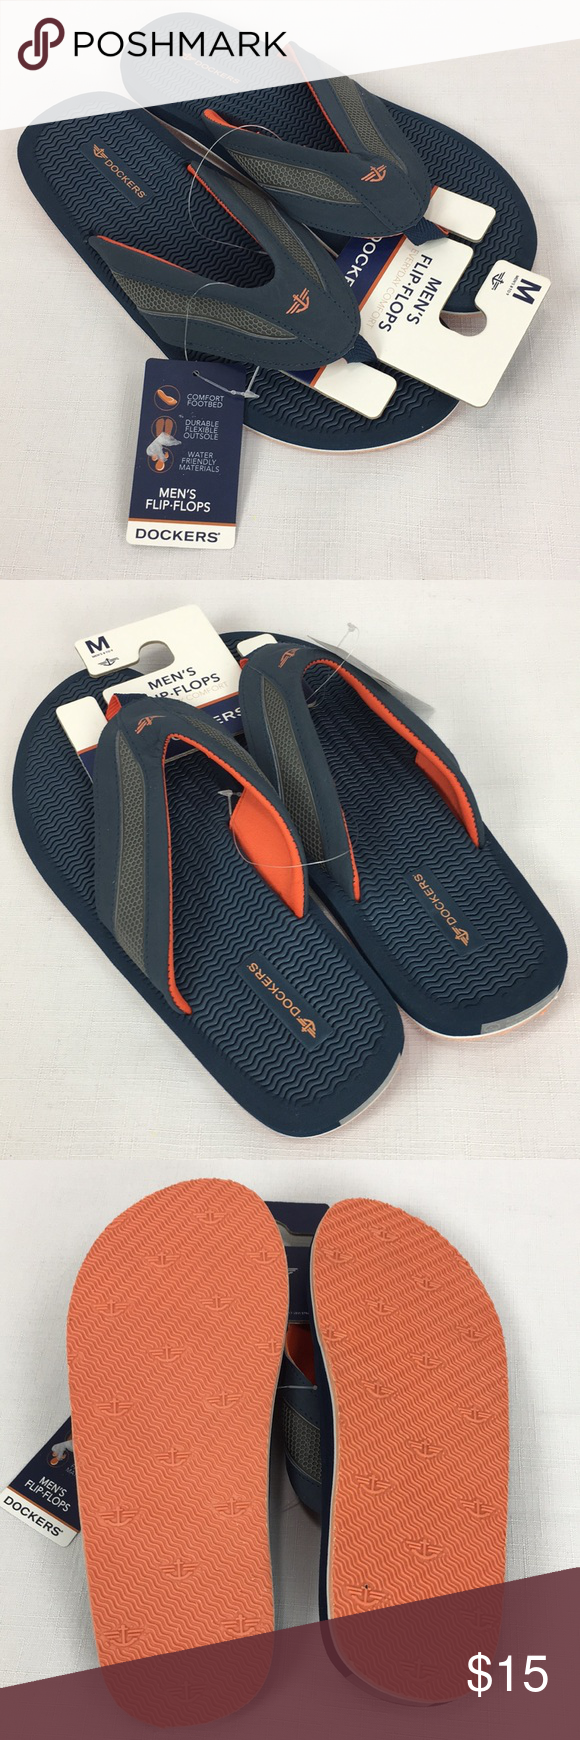 0efc95986e3a Dockers Men s Thong Flip Flops Water Friendly Med Brand new with tags men s  Thong Flip Flop